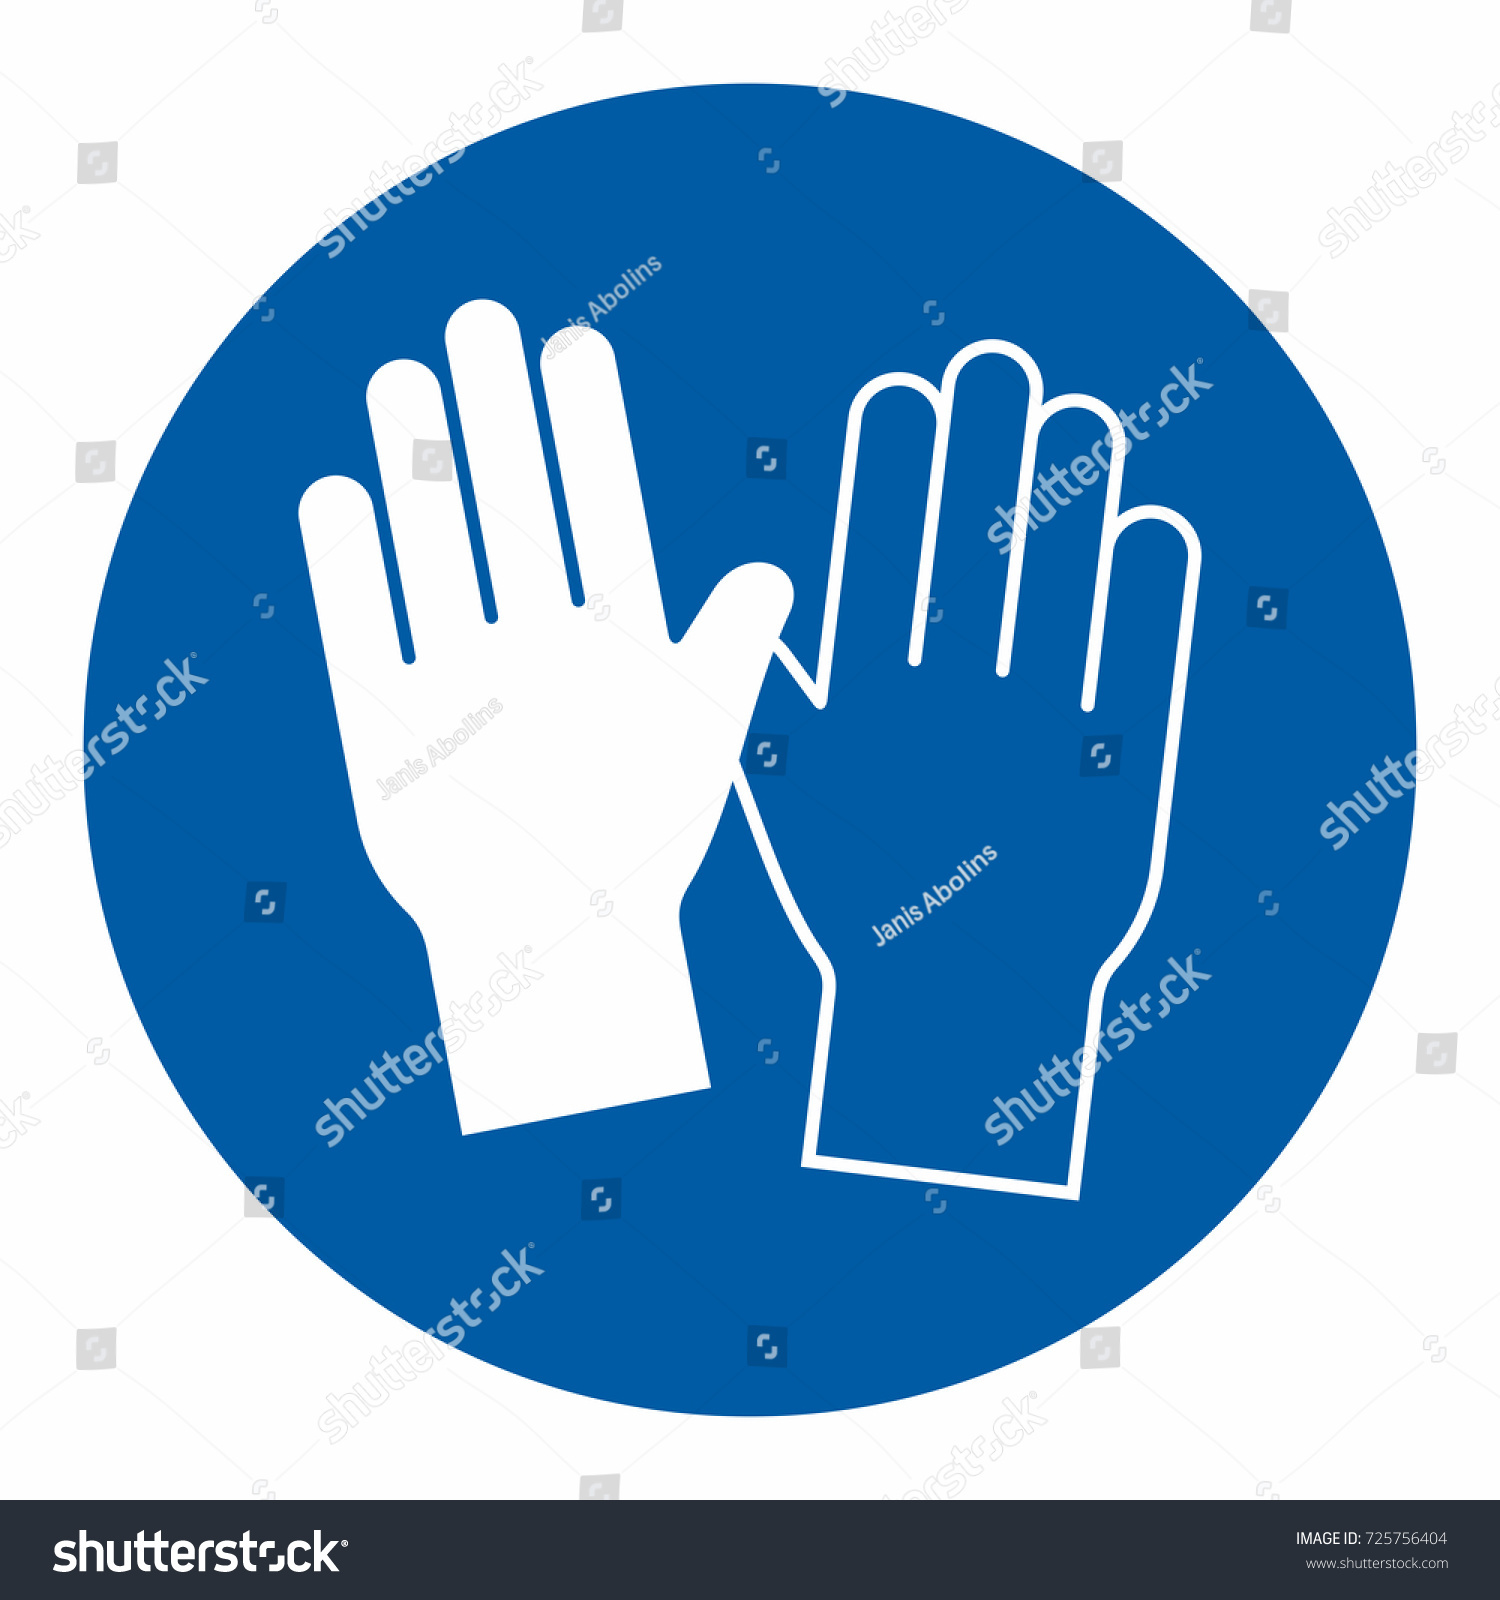 Safety sign hand protection must be stock vector 725756404 safety sign hand protection must be worn biocorpaavc